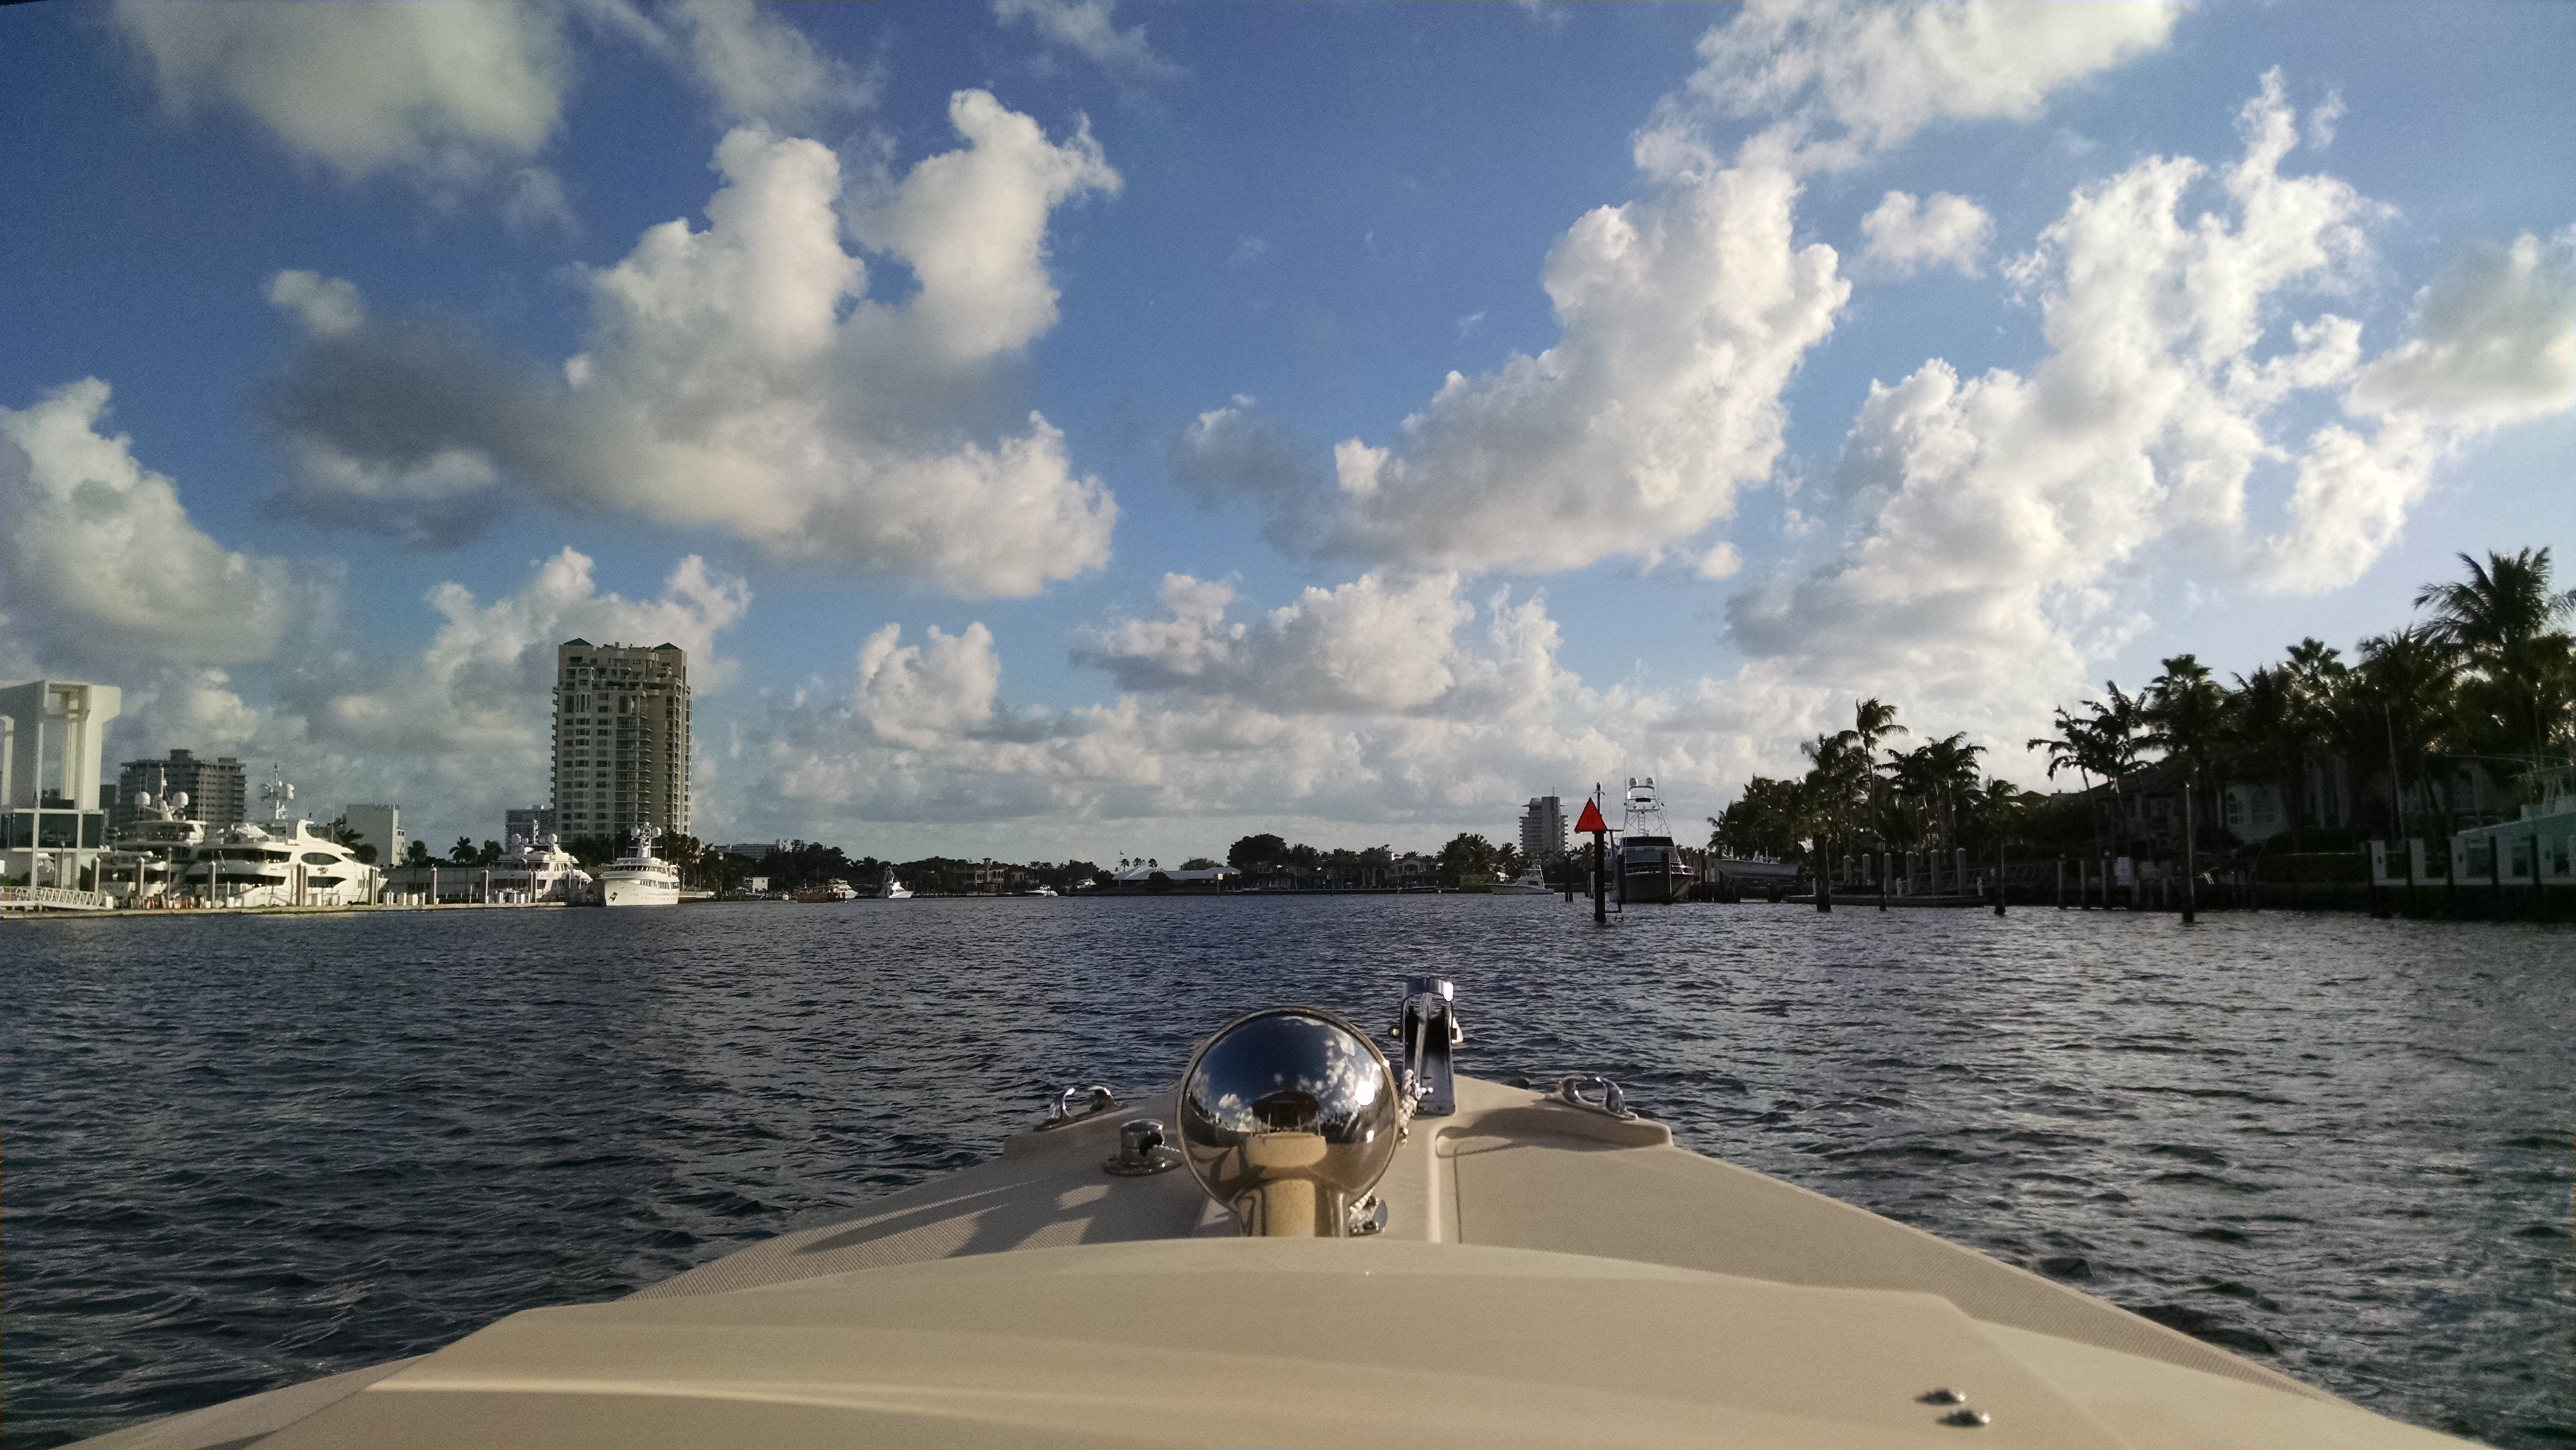 Cruising on the Fort Lauderdale Intracoastal Waterway